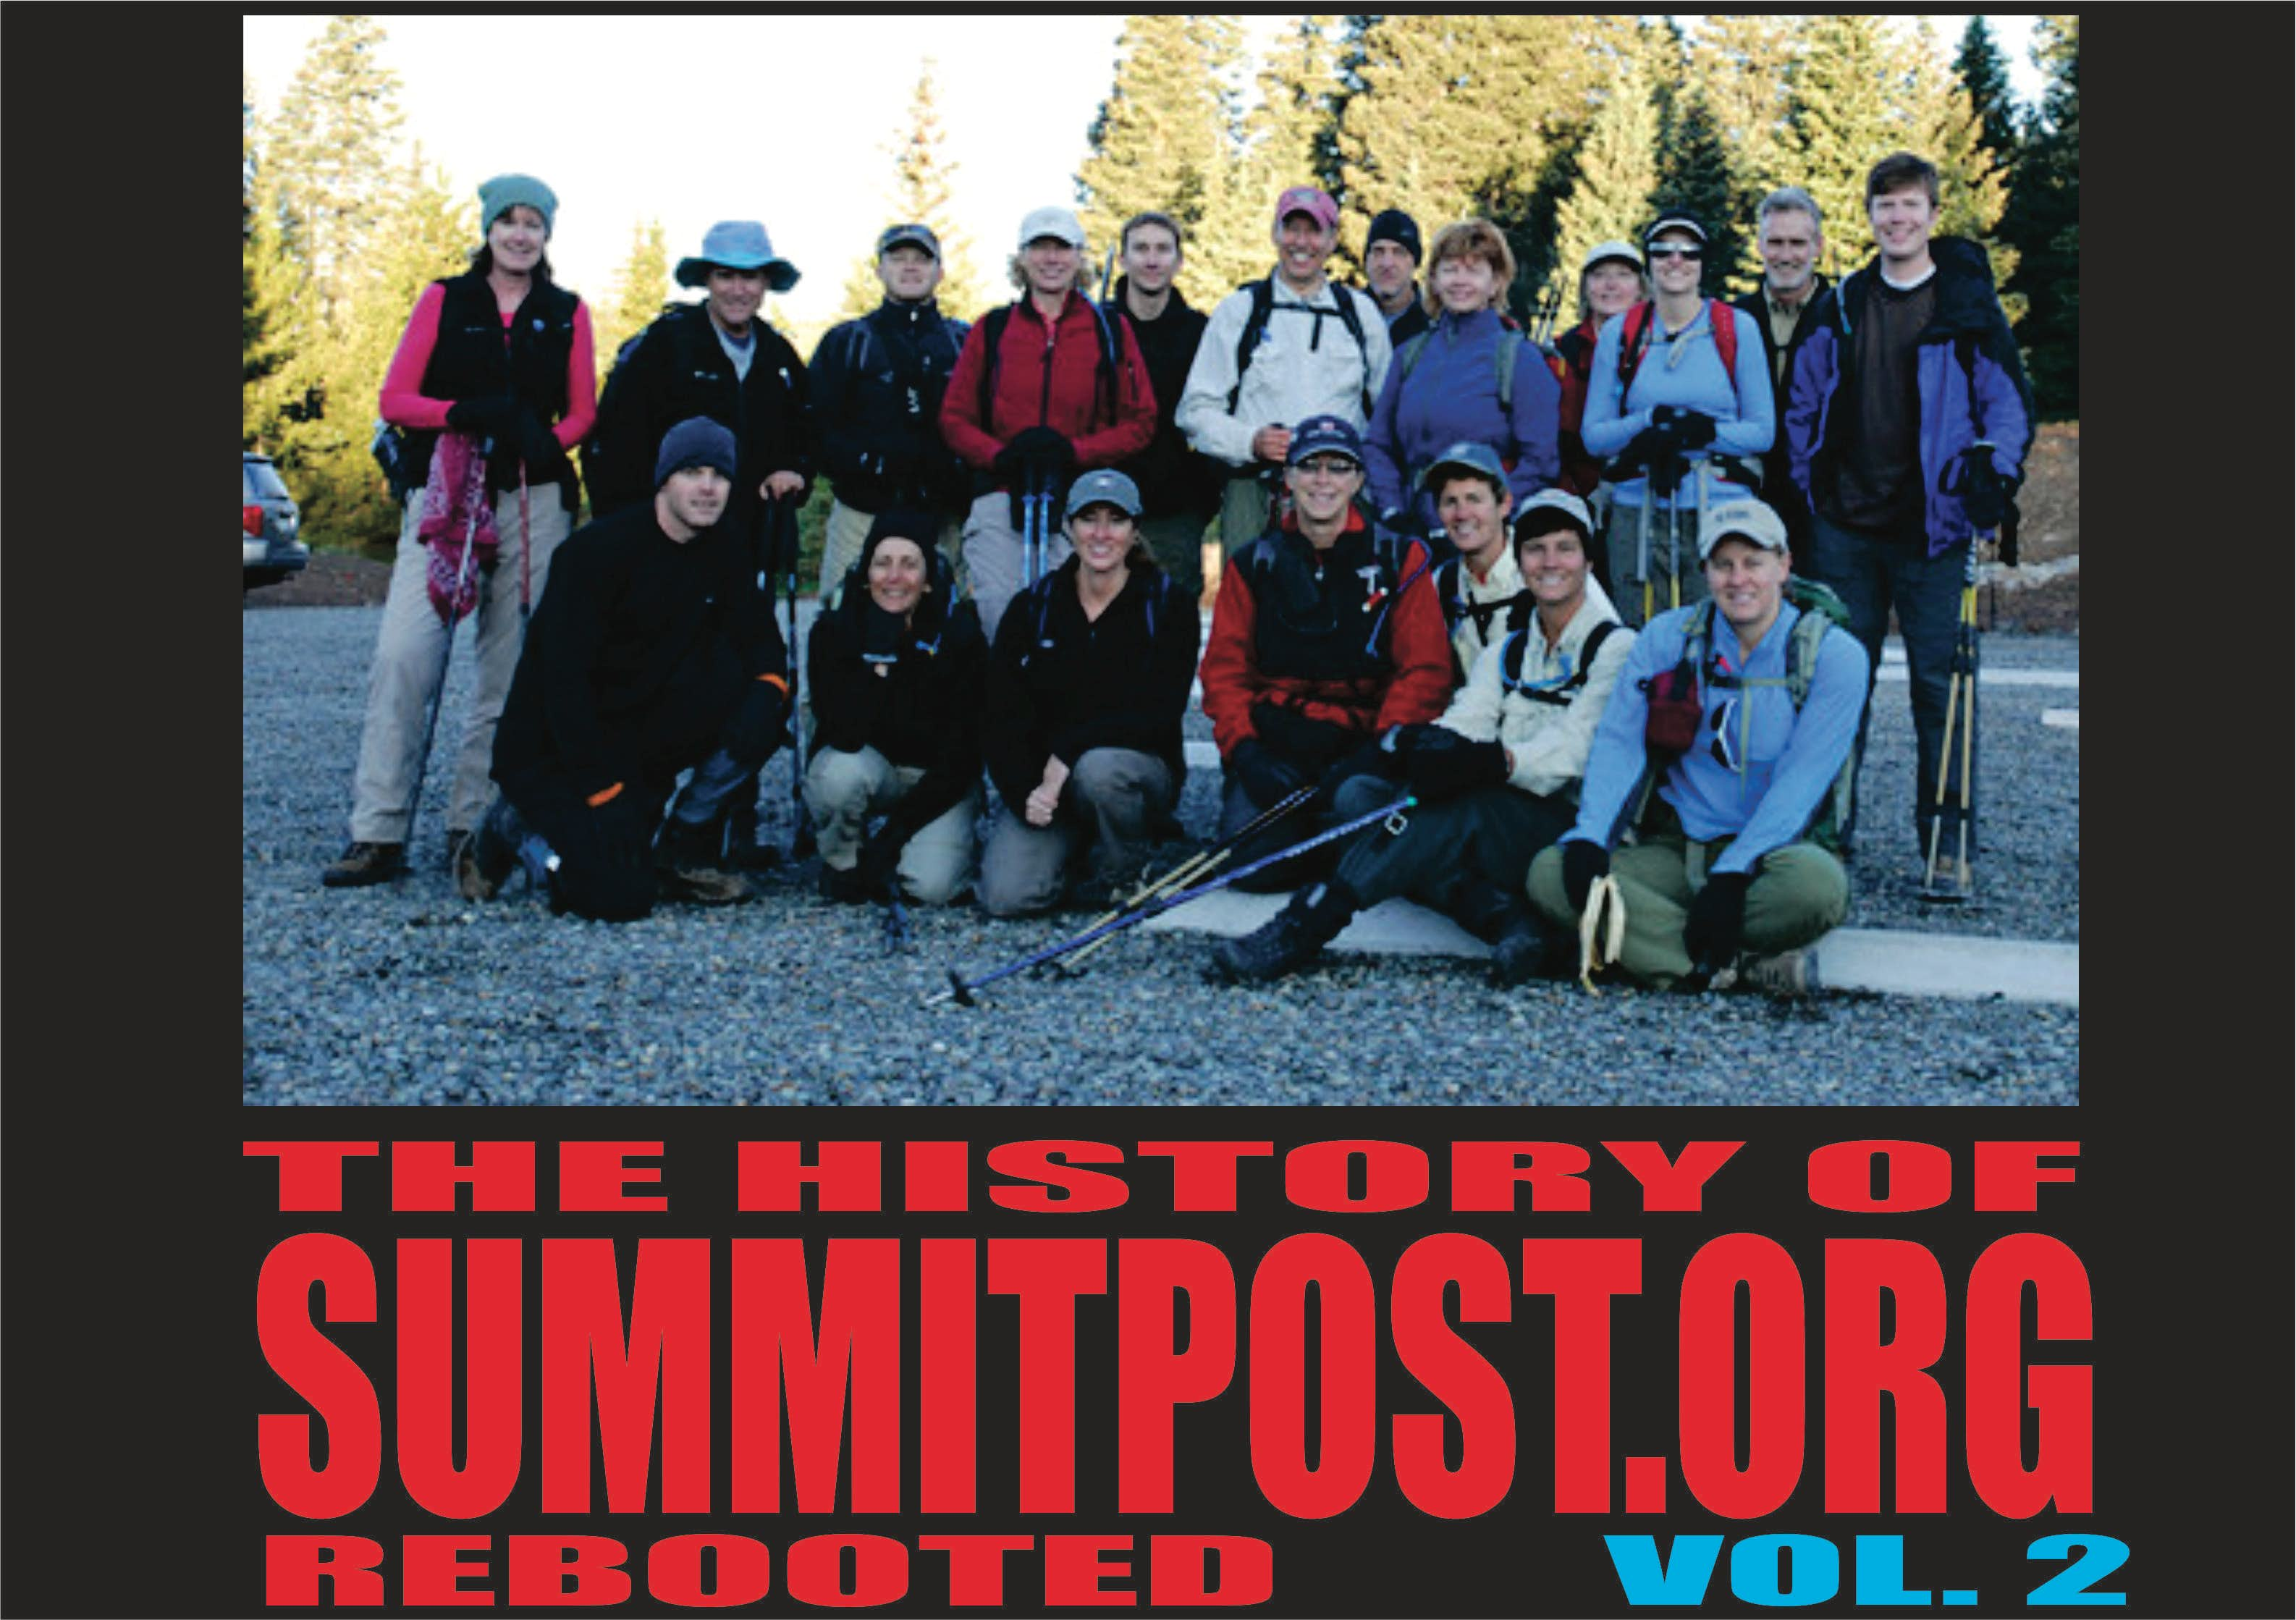 THE HISTORY OF SUMMITPOST Volume 2